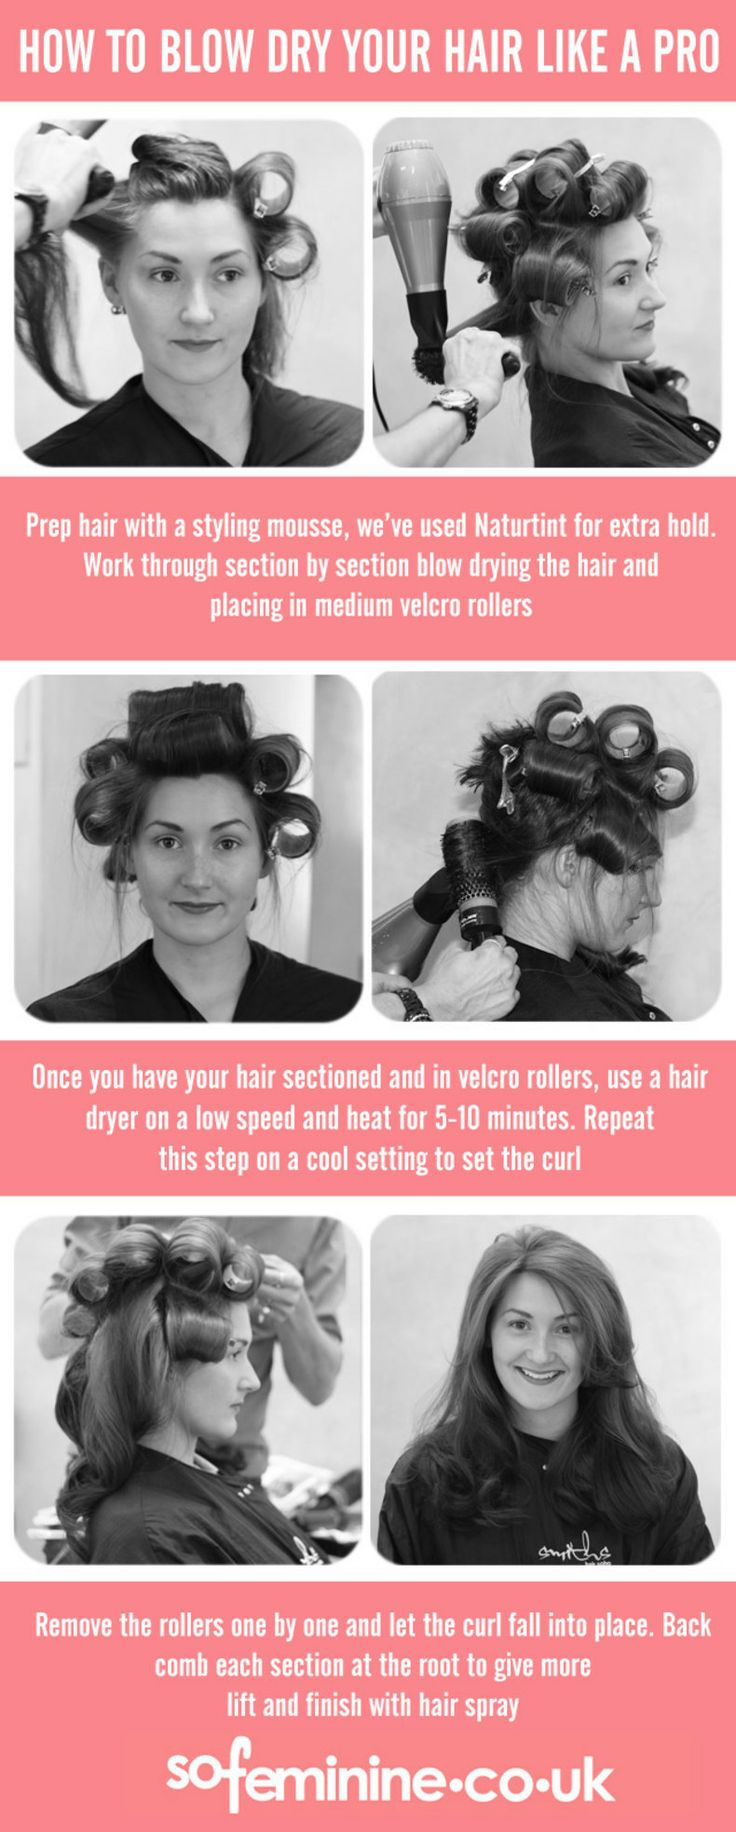 Big, Bouncy, Bouffant! How To Blow Dry Hair Like A Pro